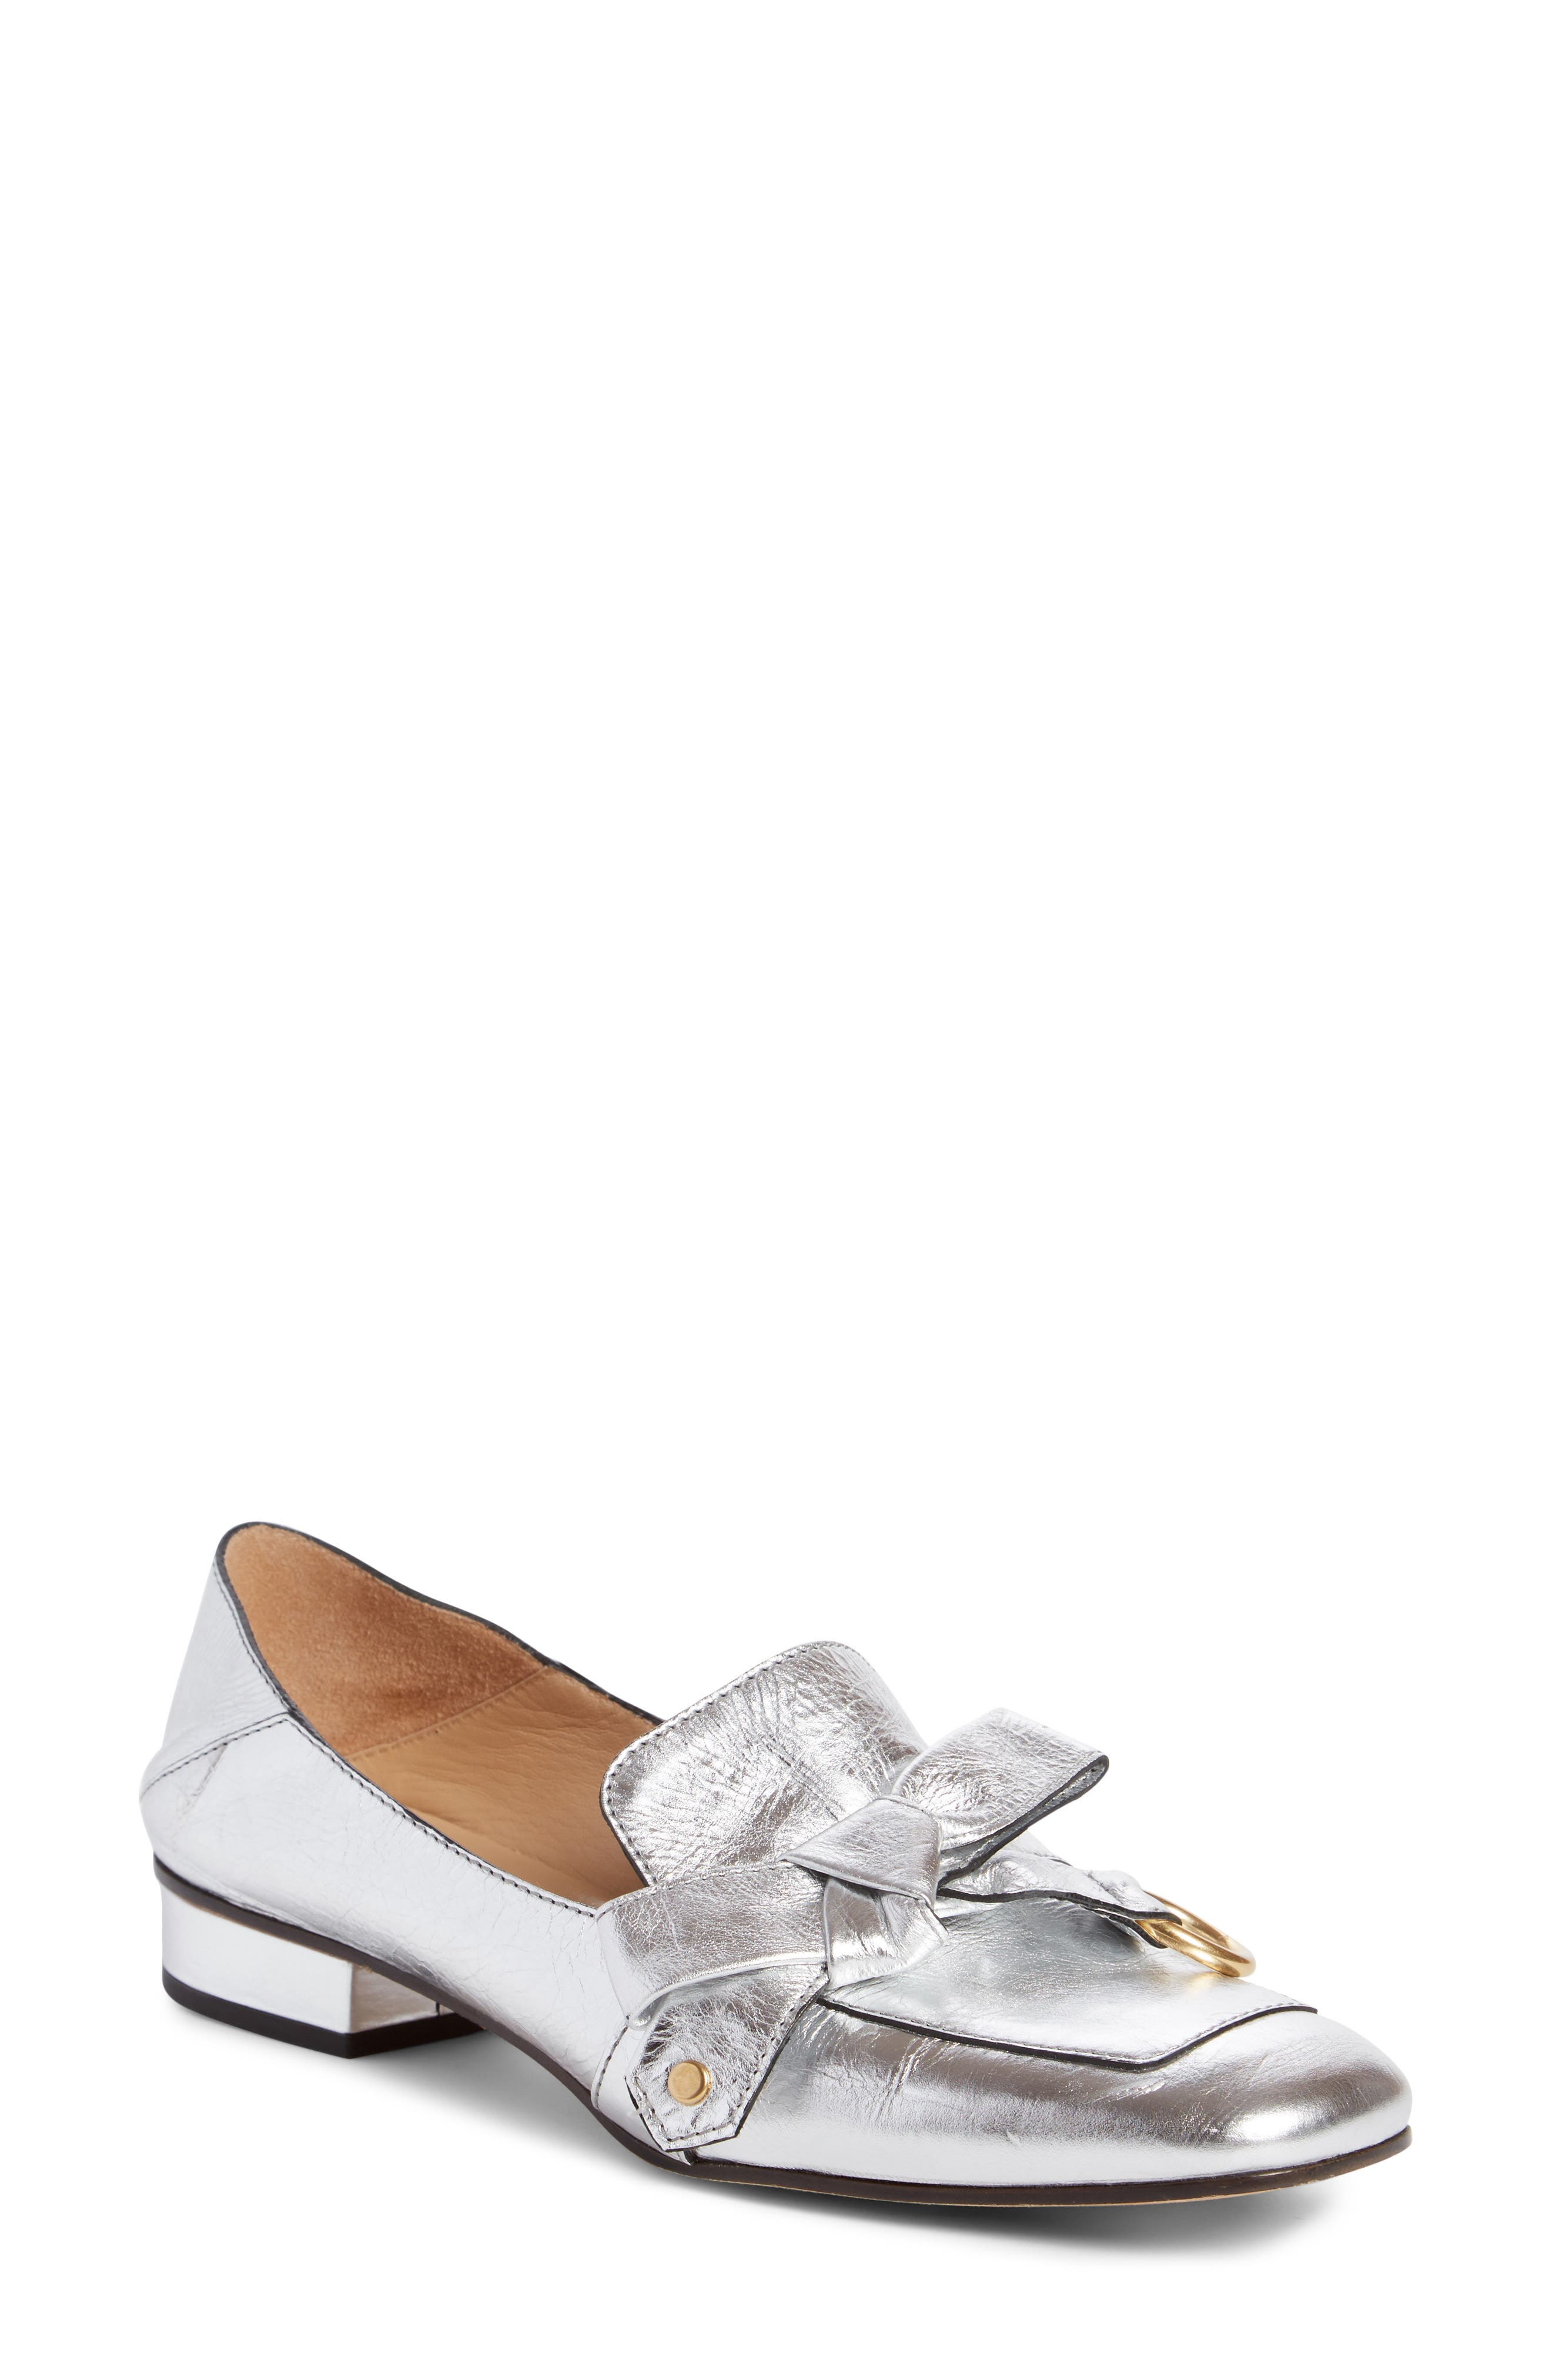 Quincey Convertible Loafer,                             Main thumbnail 1, color,